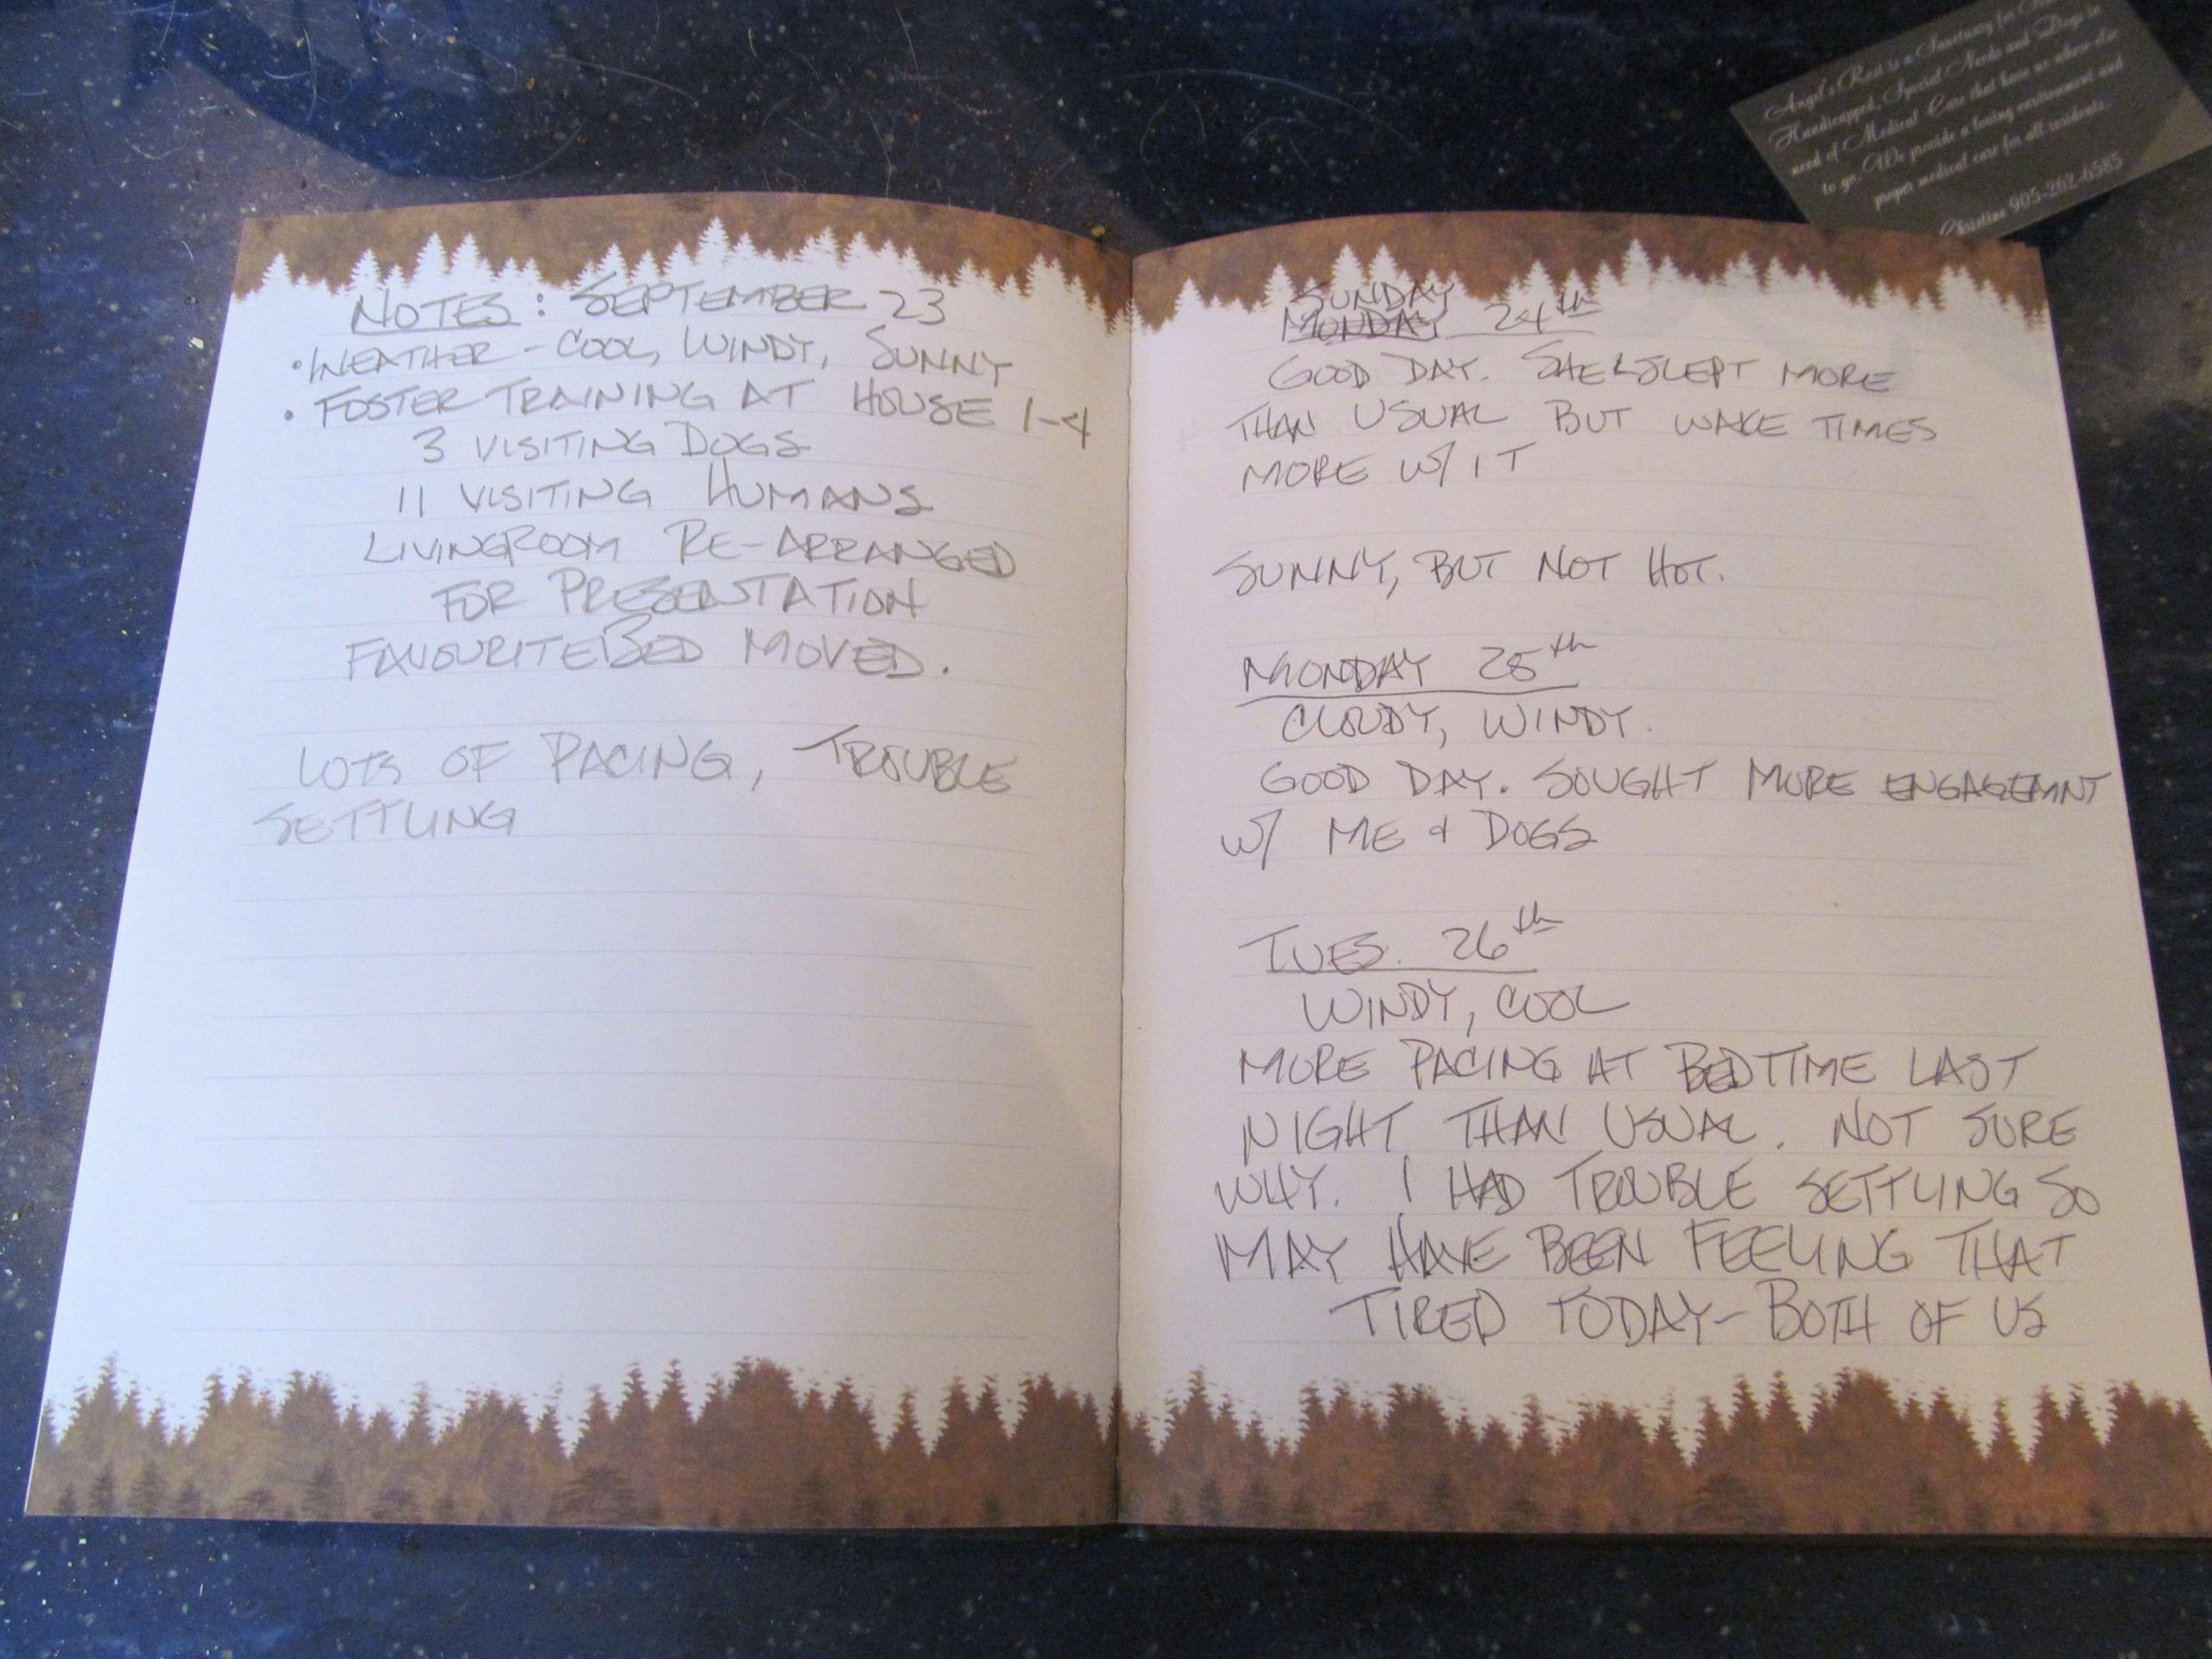 An page in a behaviour journal